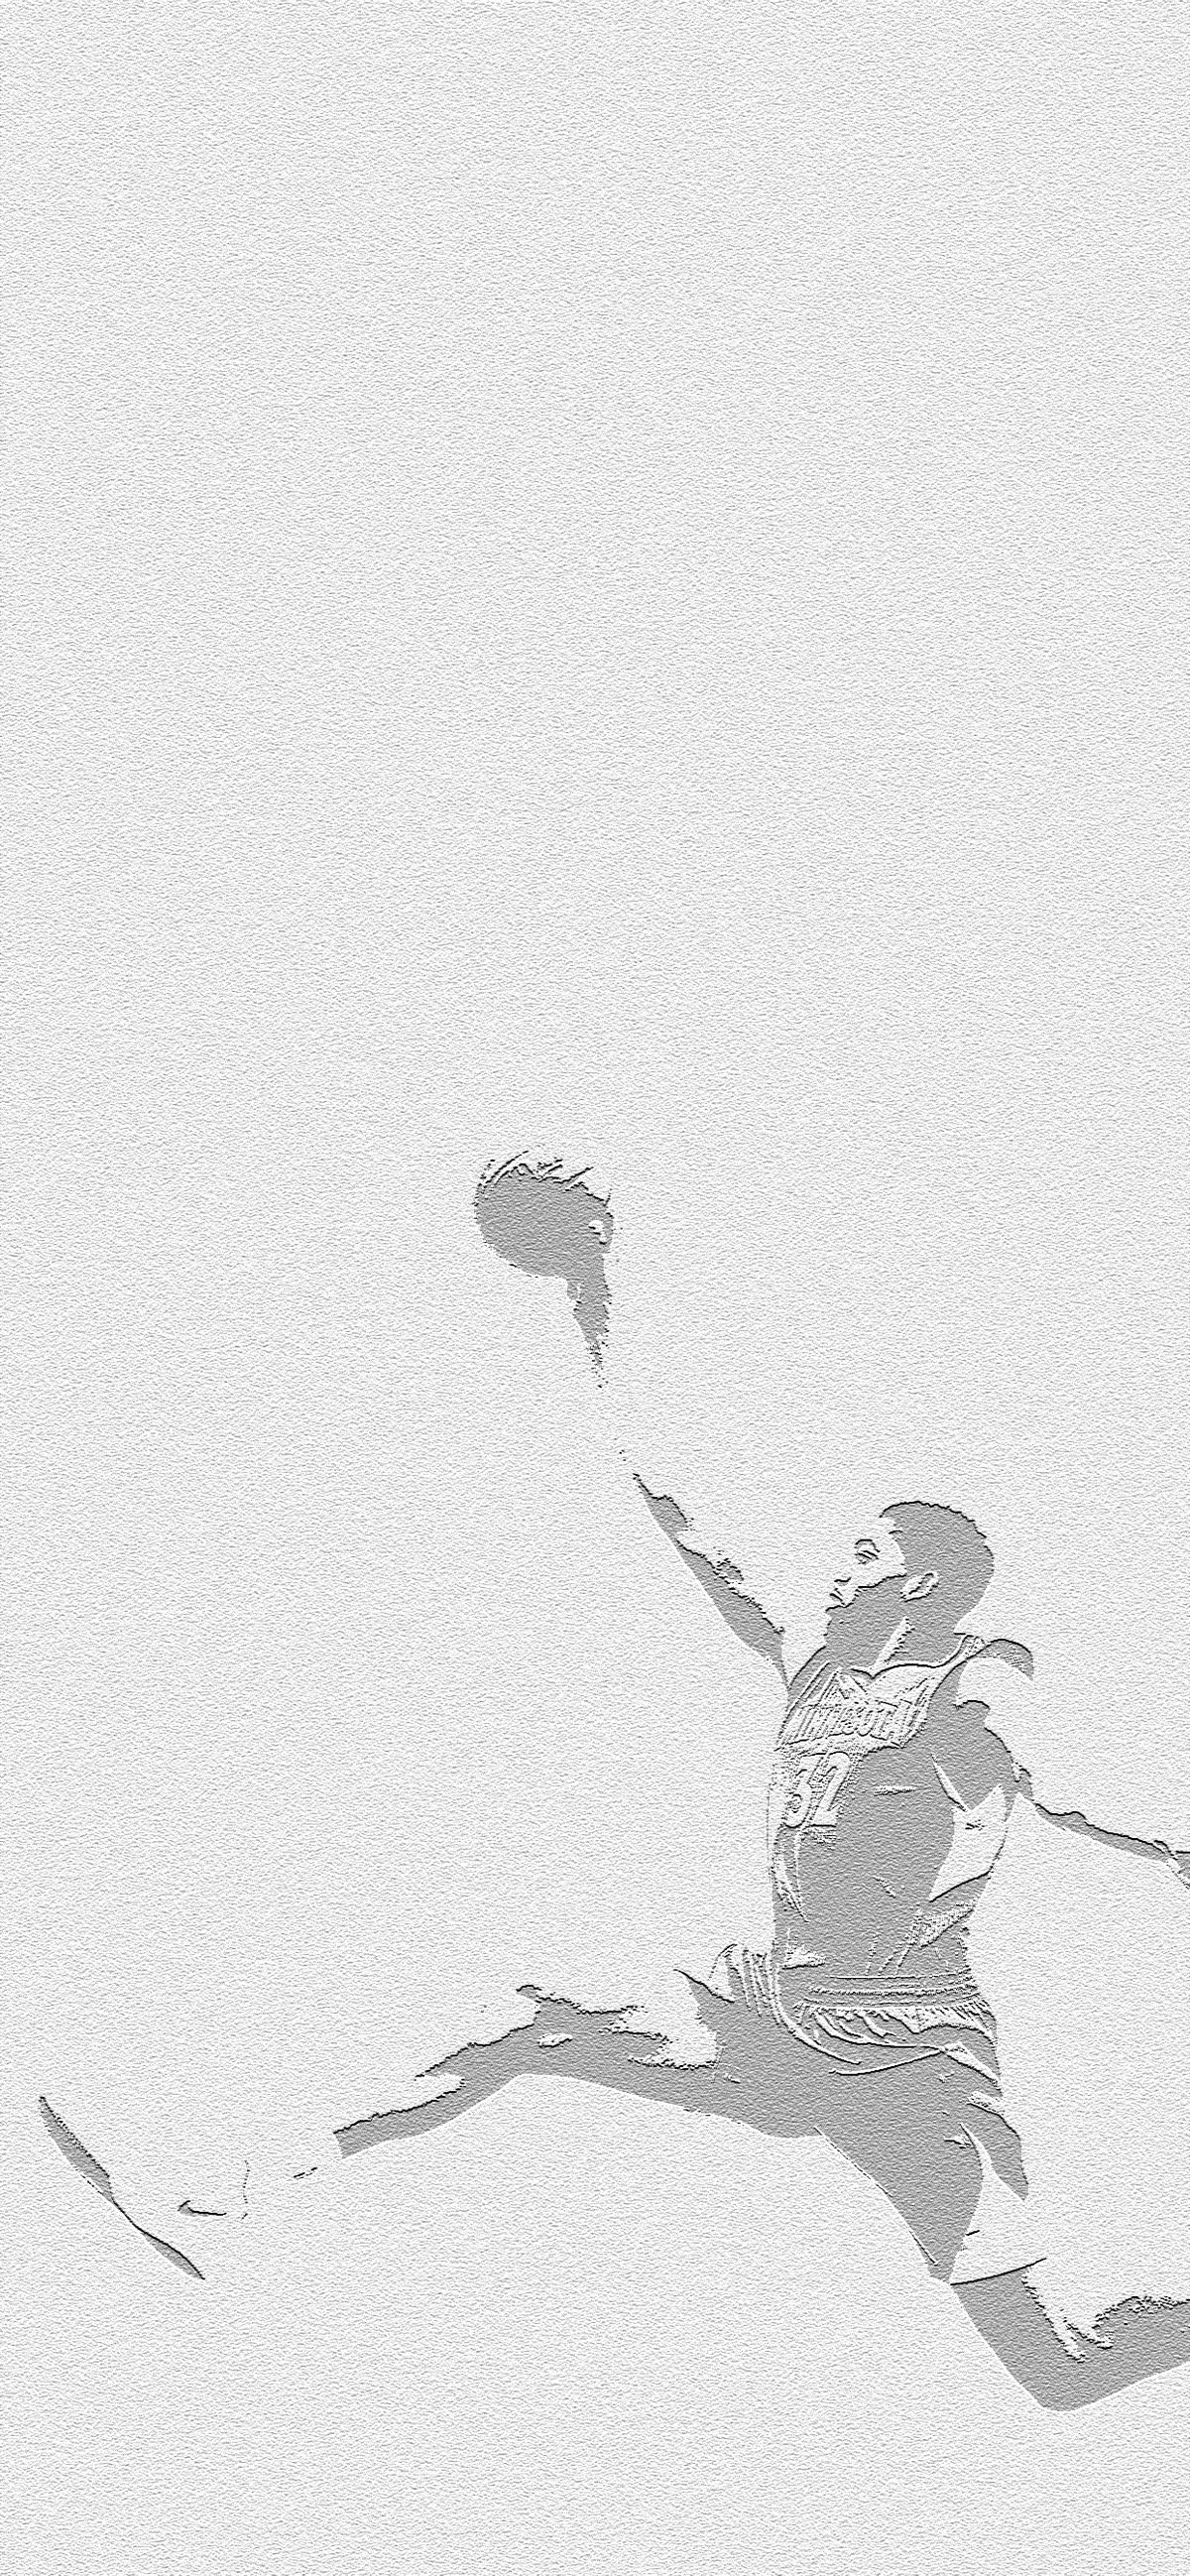 A grainy illustration of Towns dunking a basketball. It's black and white and very artsy fartsy in my opinion